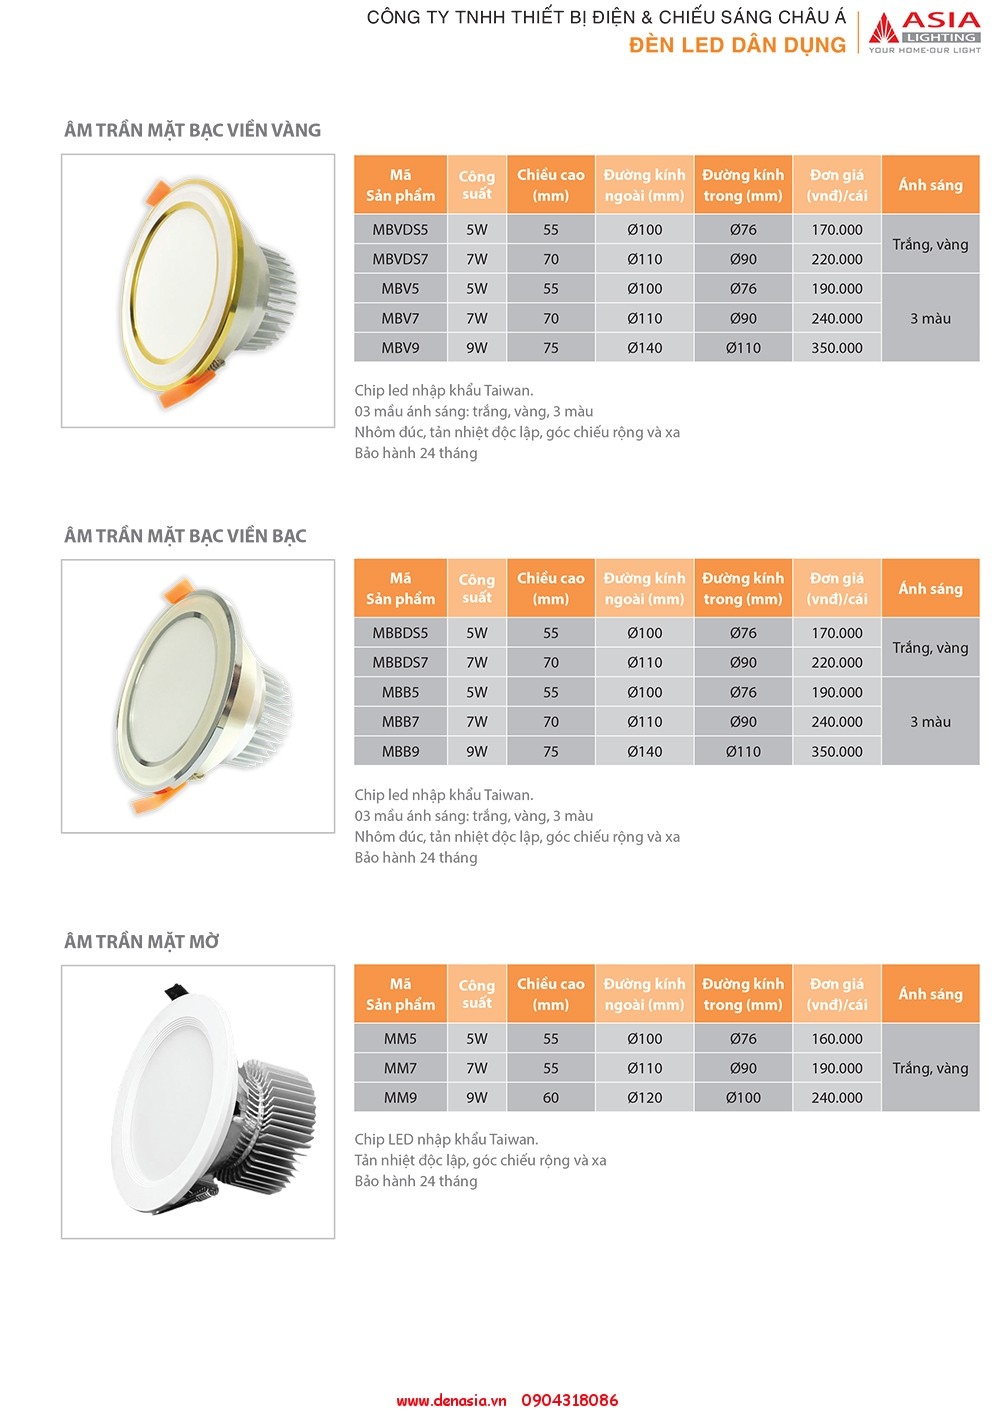 CATALOG - ĐÈN LED ASIA-11